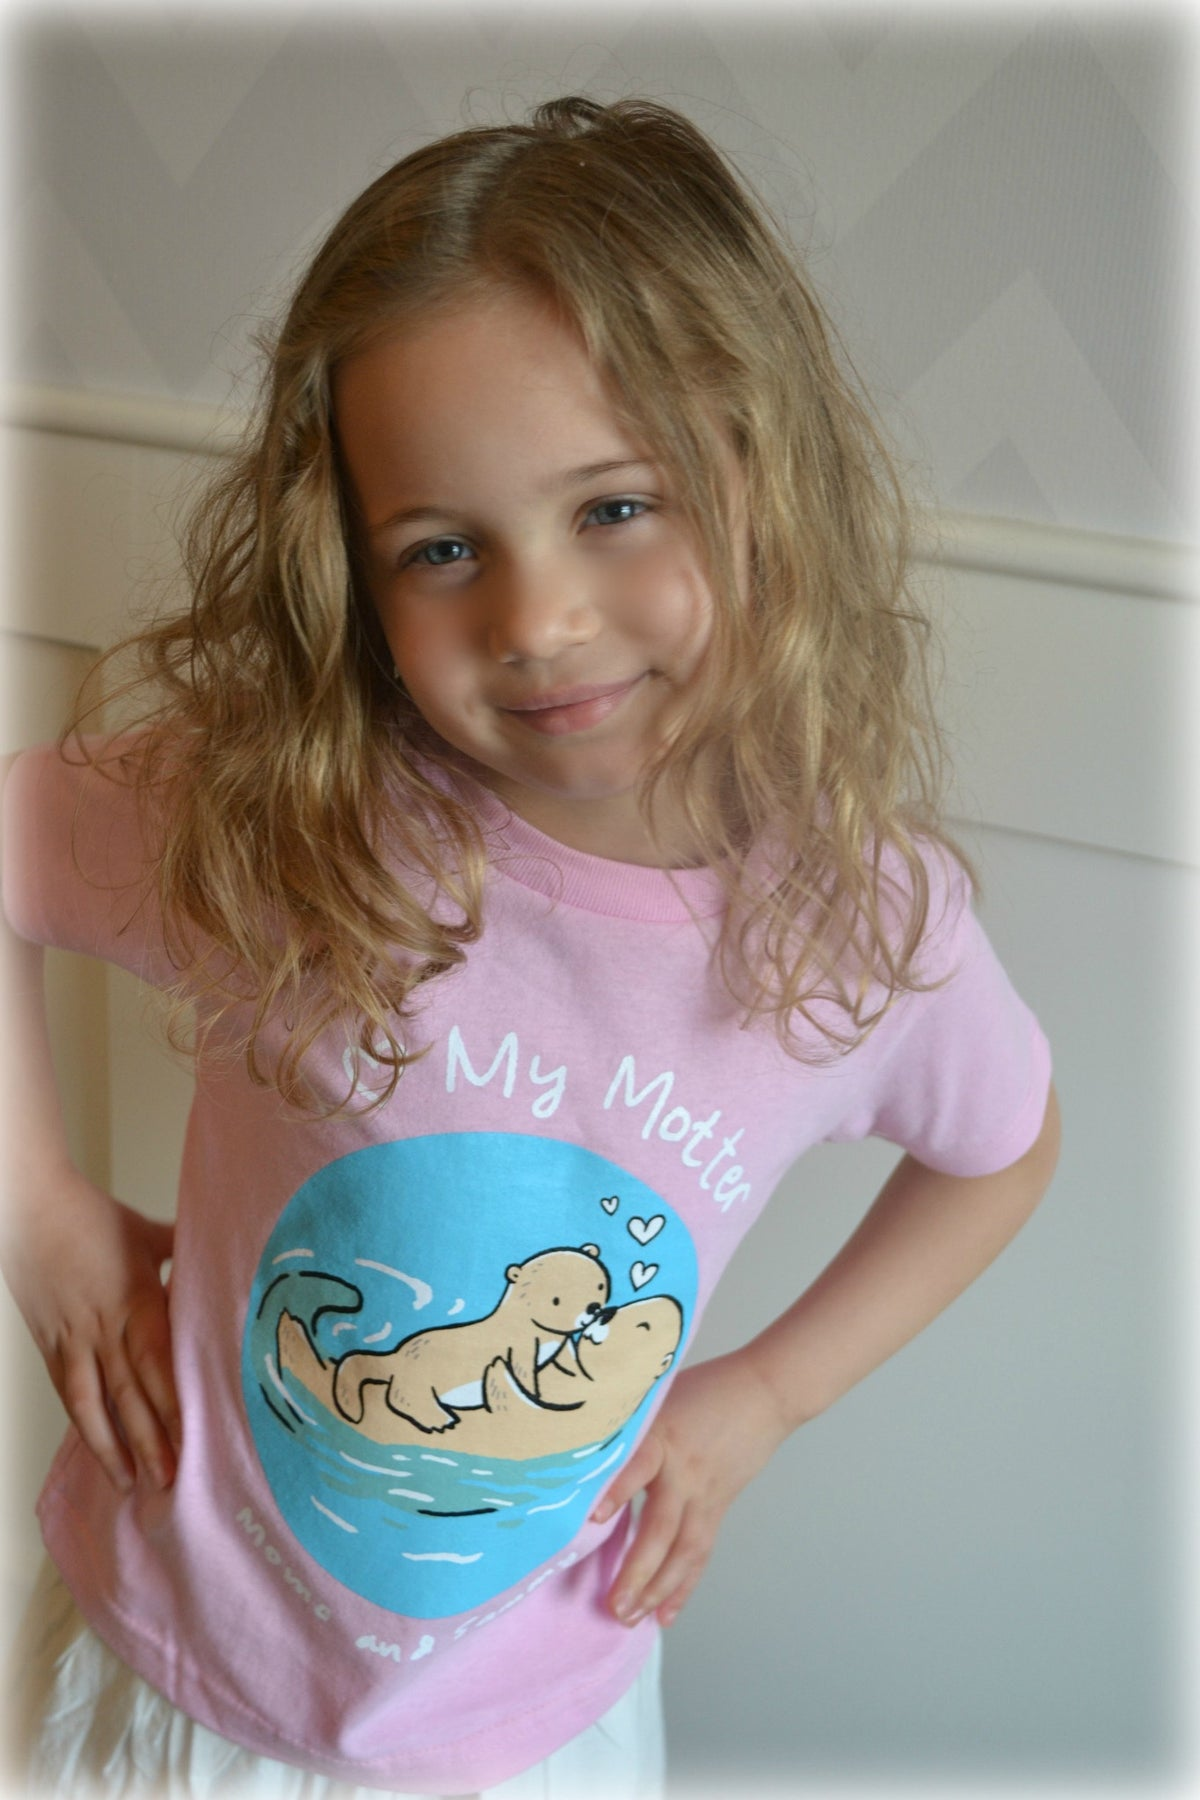 I HEART MY MOTTER (KISS) - Kids Tee Pink